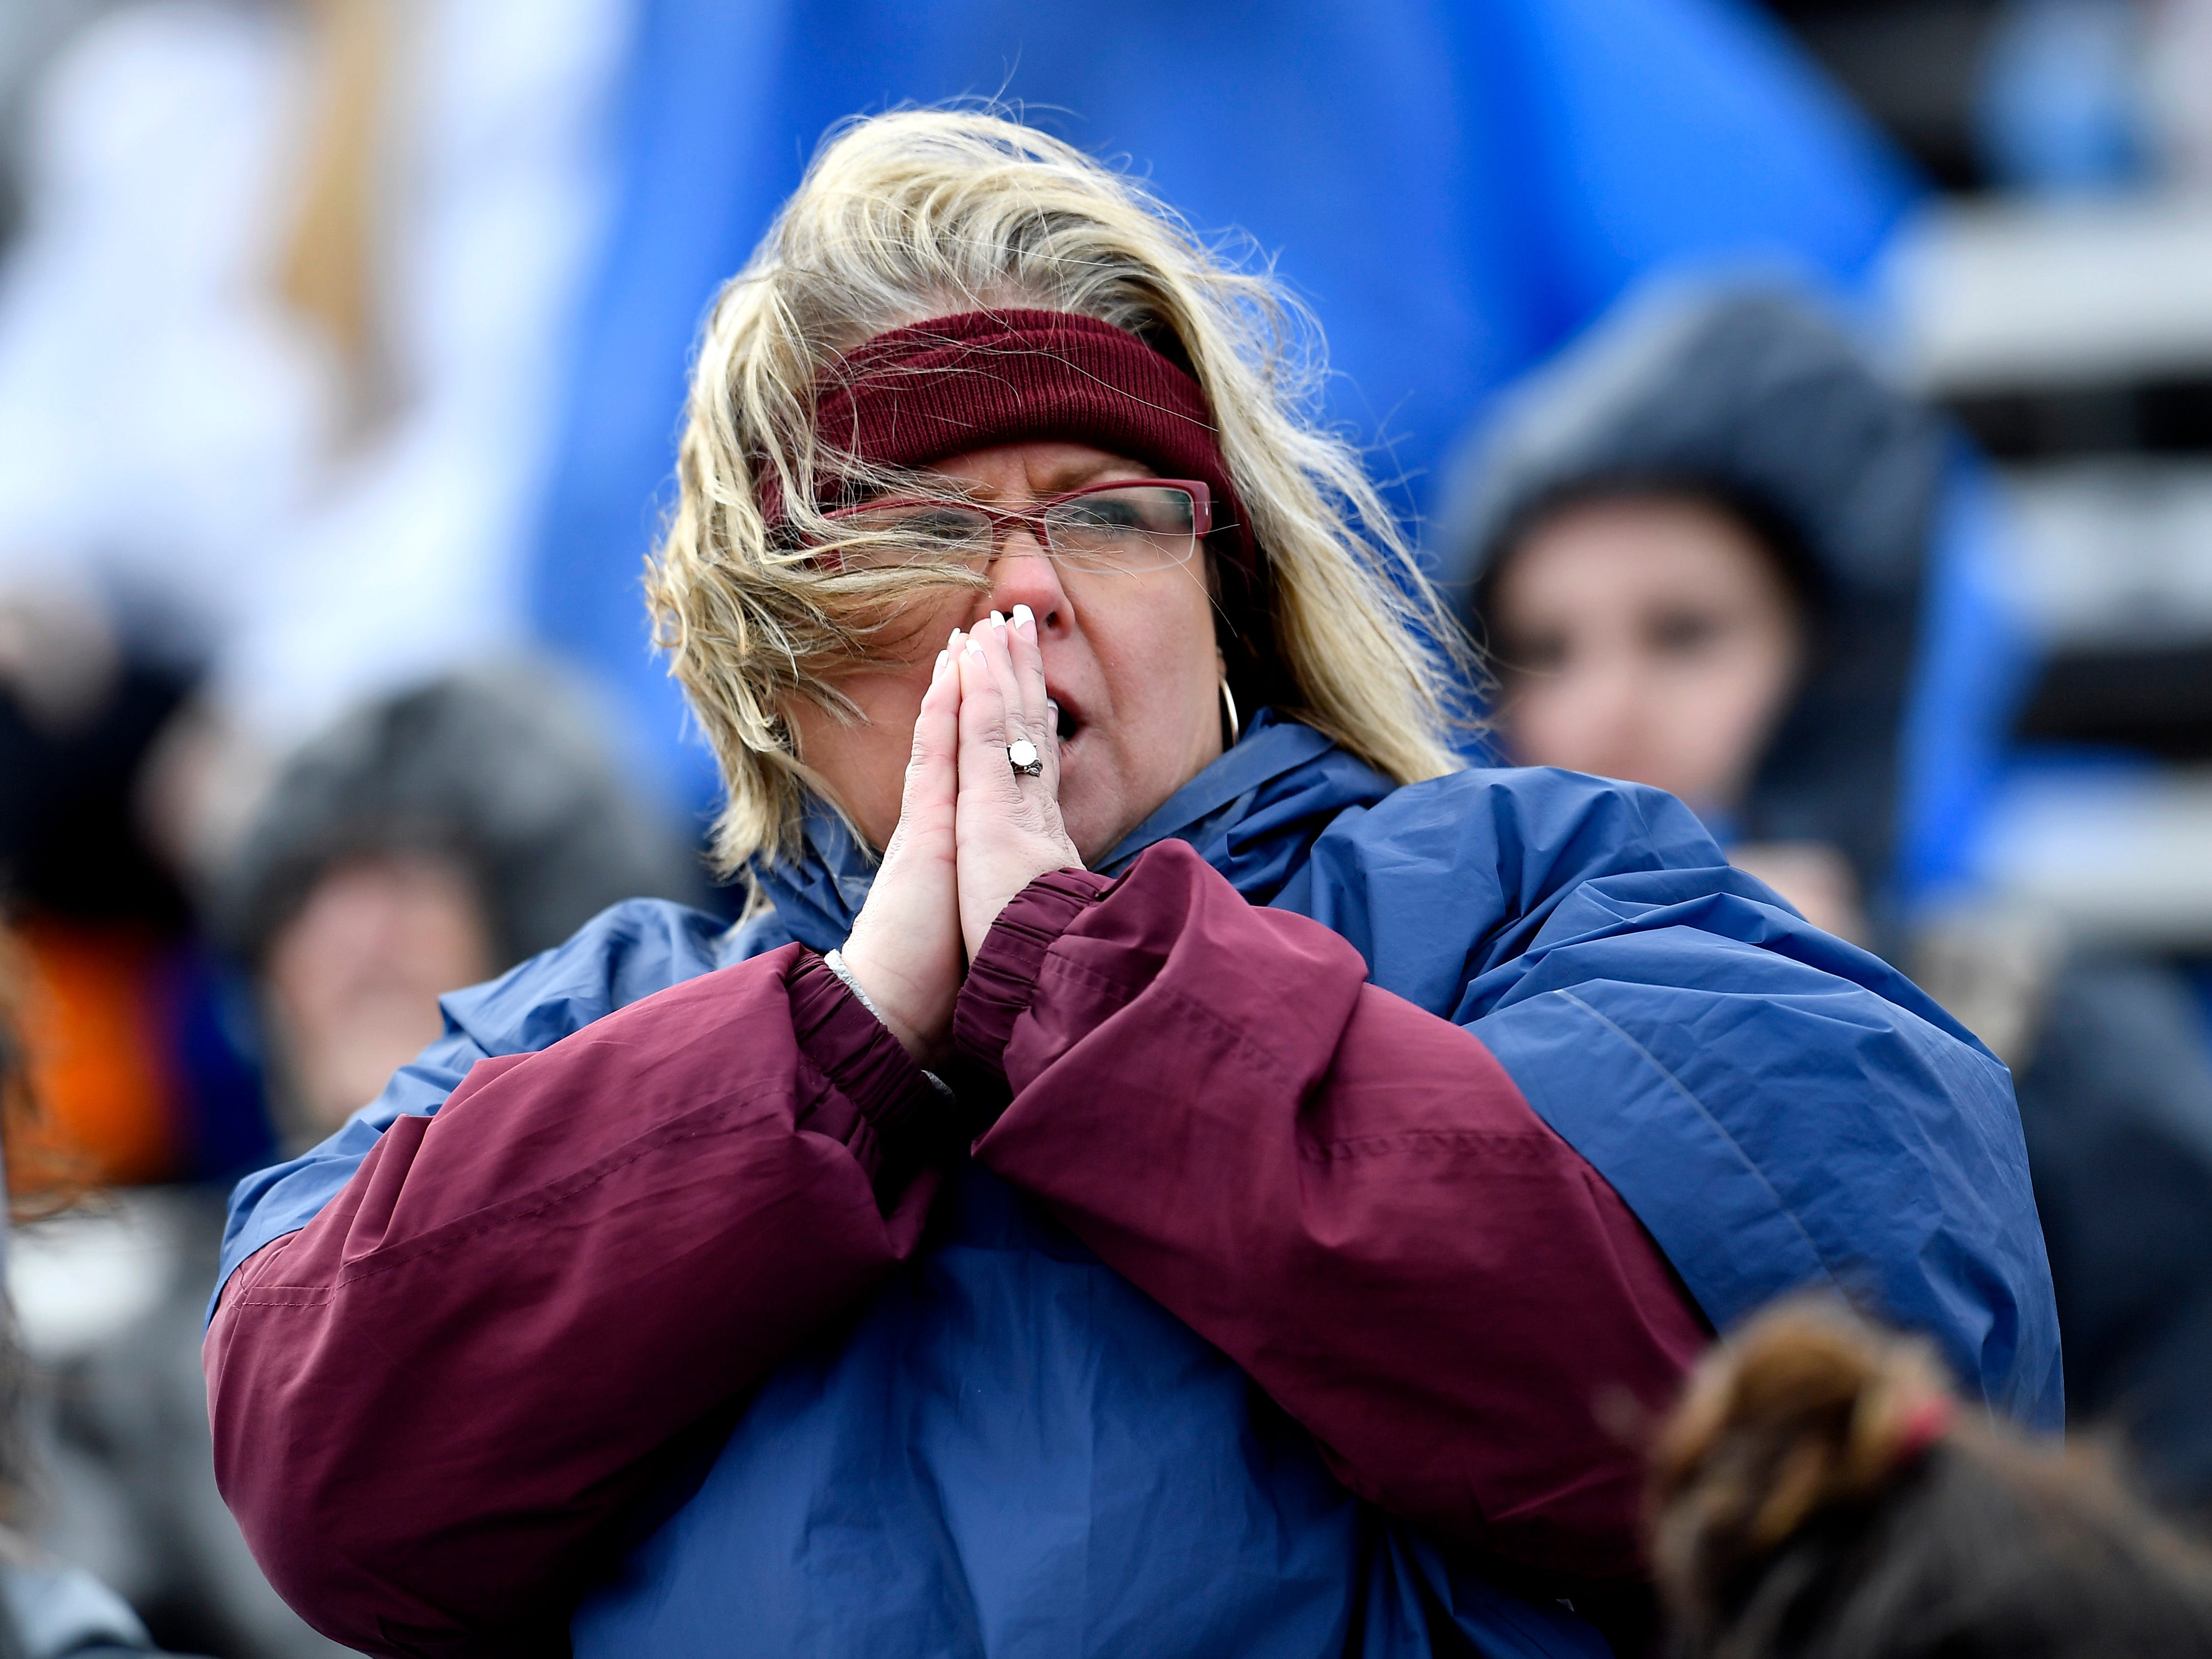 A Cornersville fan watches the action during the fourth quarter at the Class I-A BlueCross Bowl state championship at Tennessee Tech's Tucker Stadium in Cookeville, Tenn., on Saturday, Dec. 1, 2018.